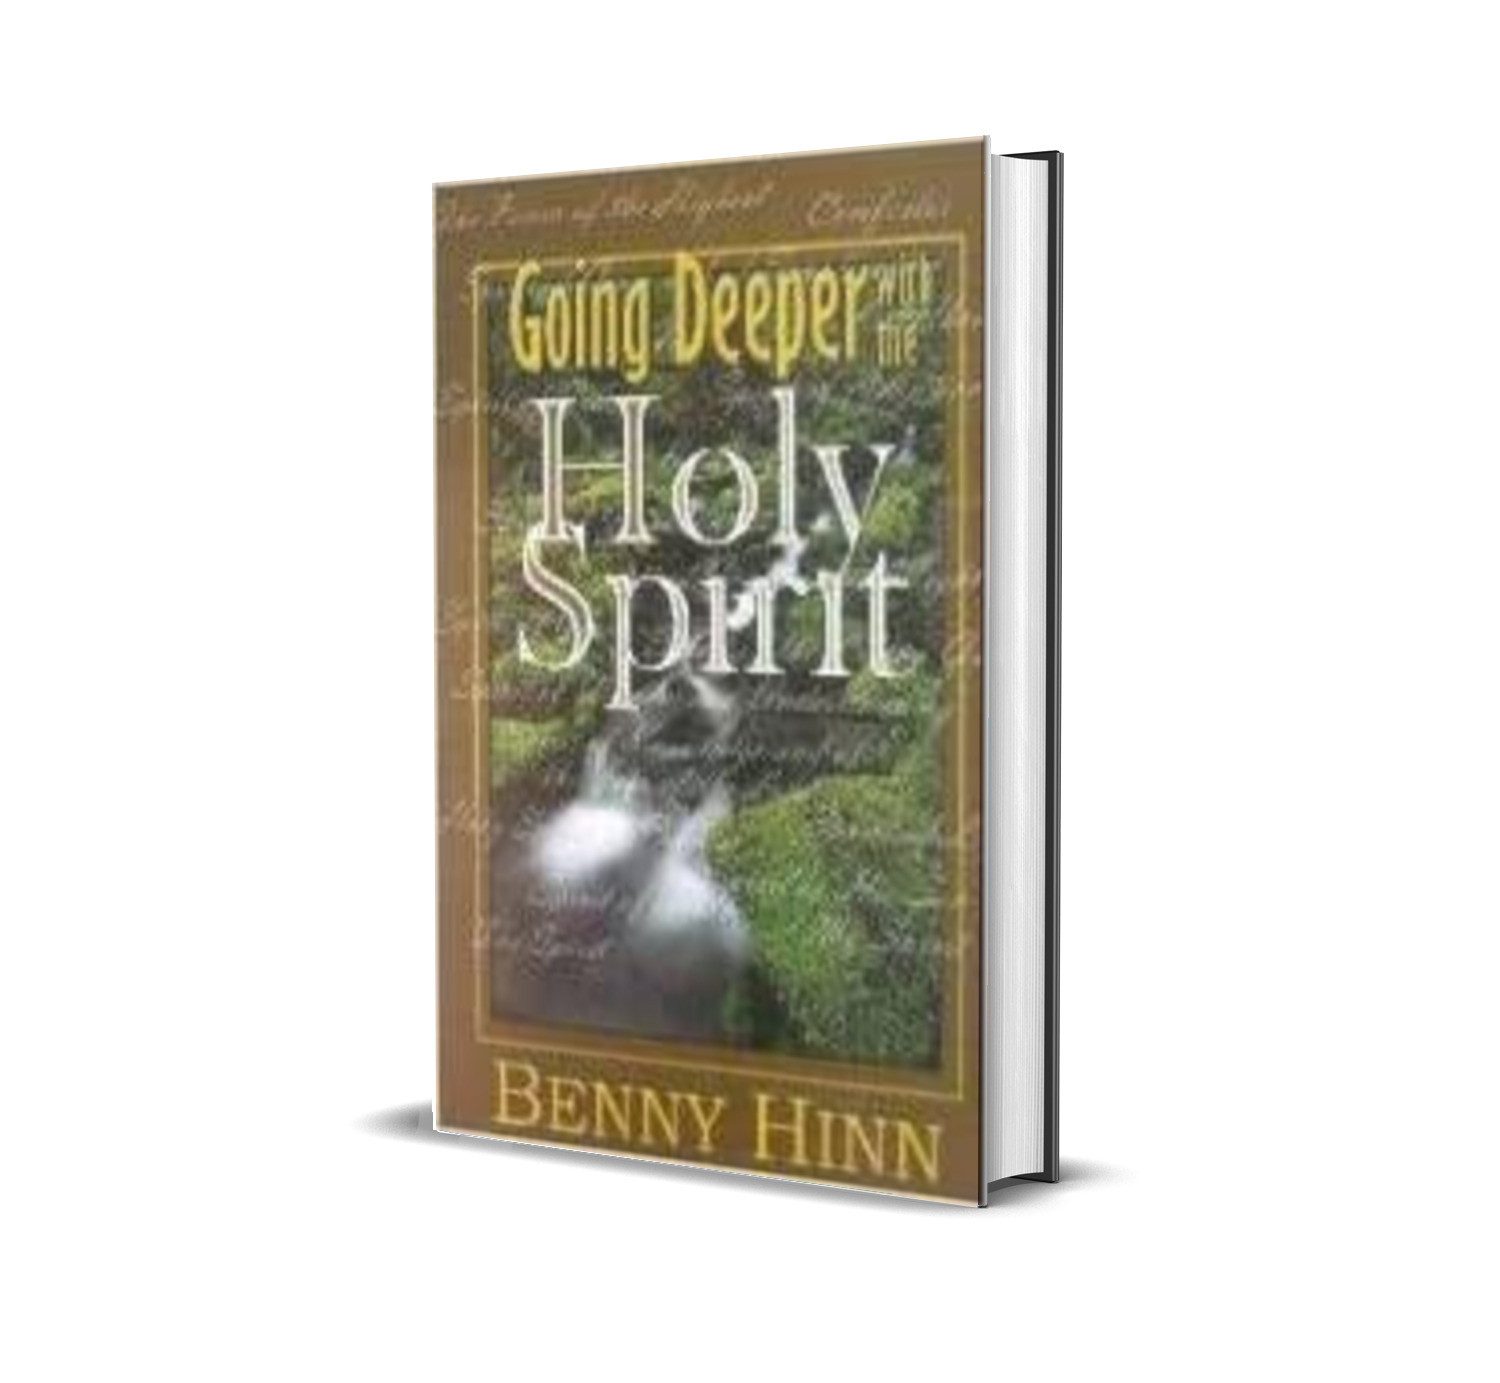 GOING DEEPER WITH THE HOLY SPIRIT - BENNY HINN